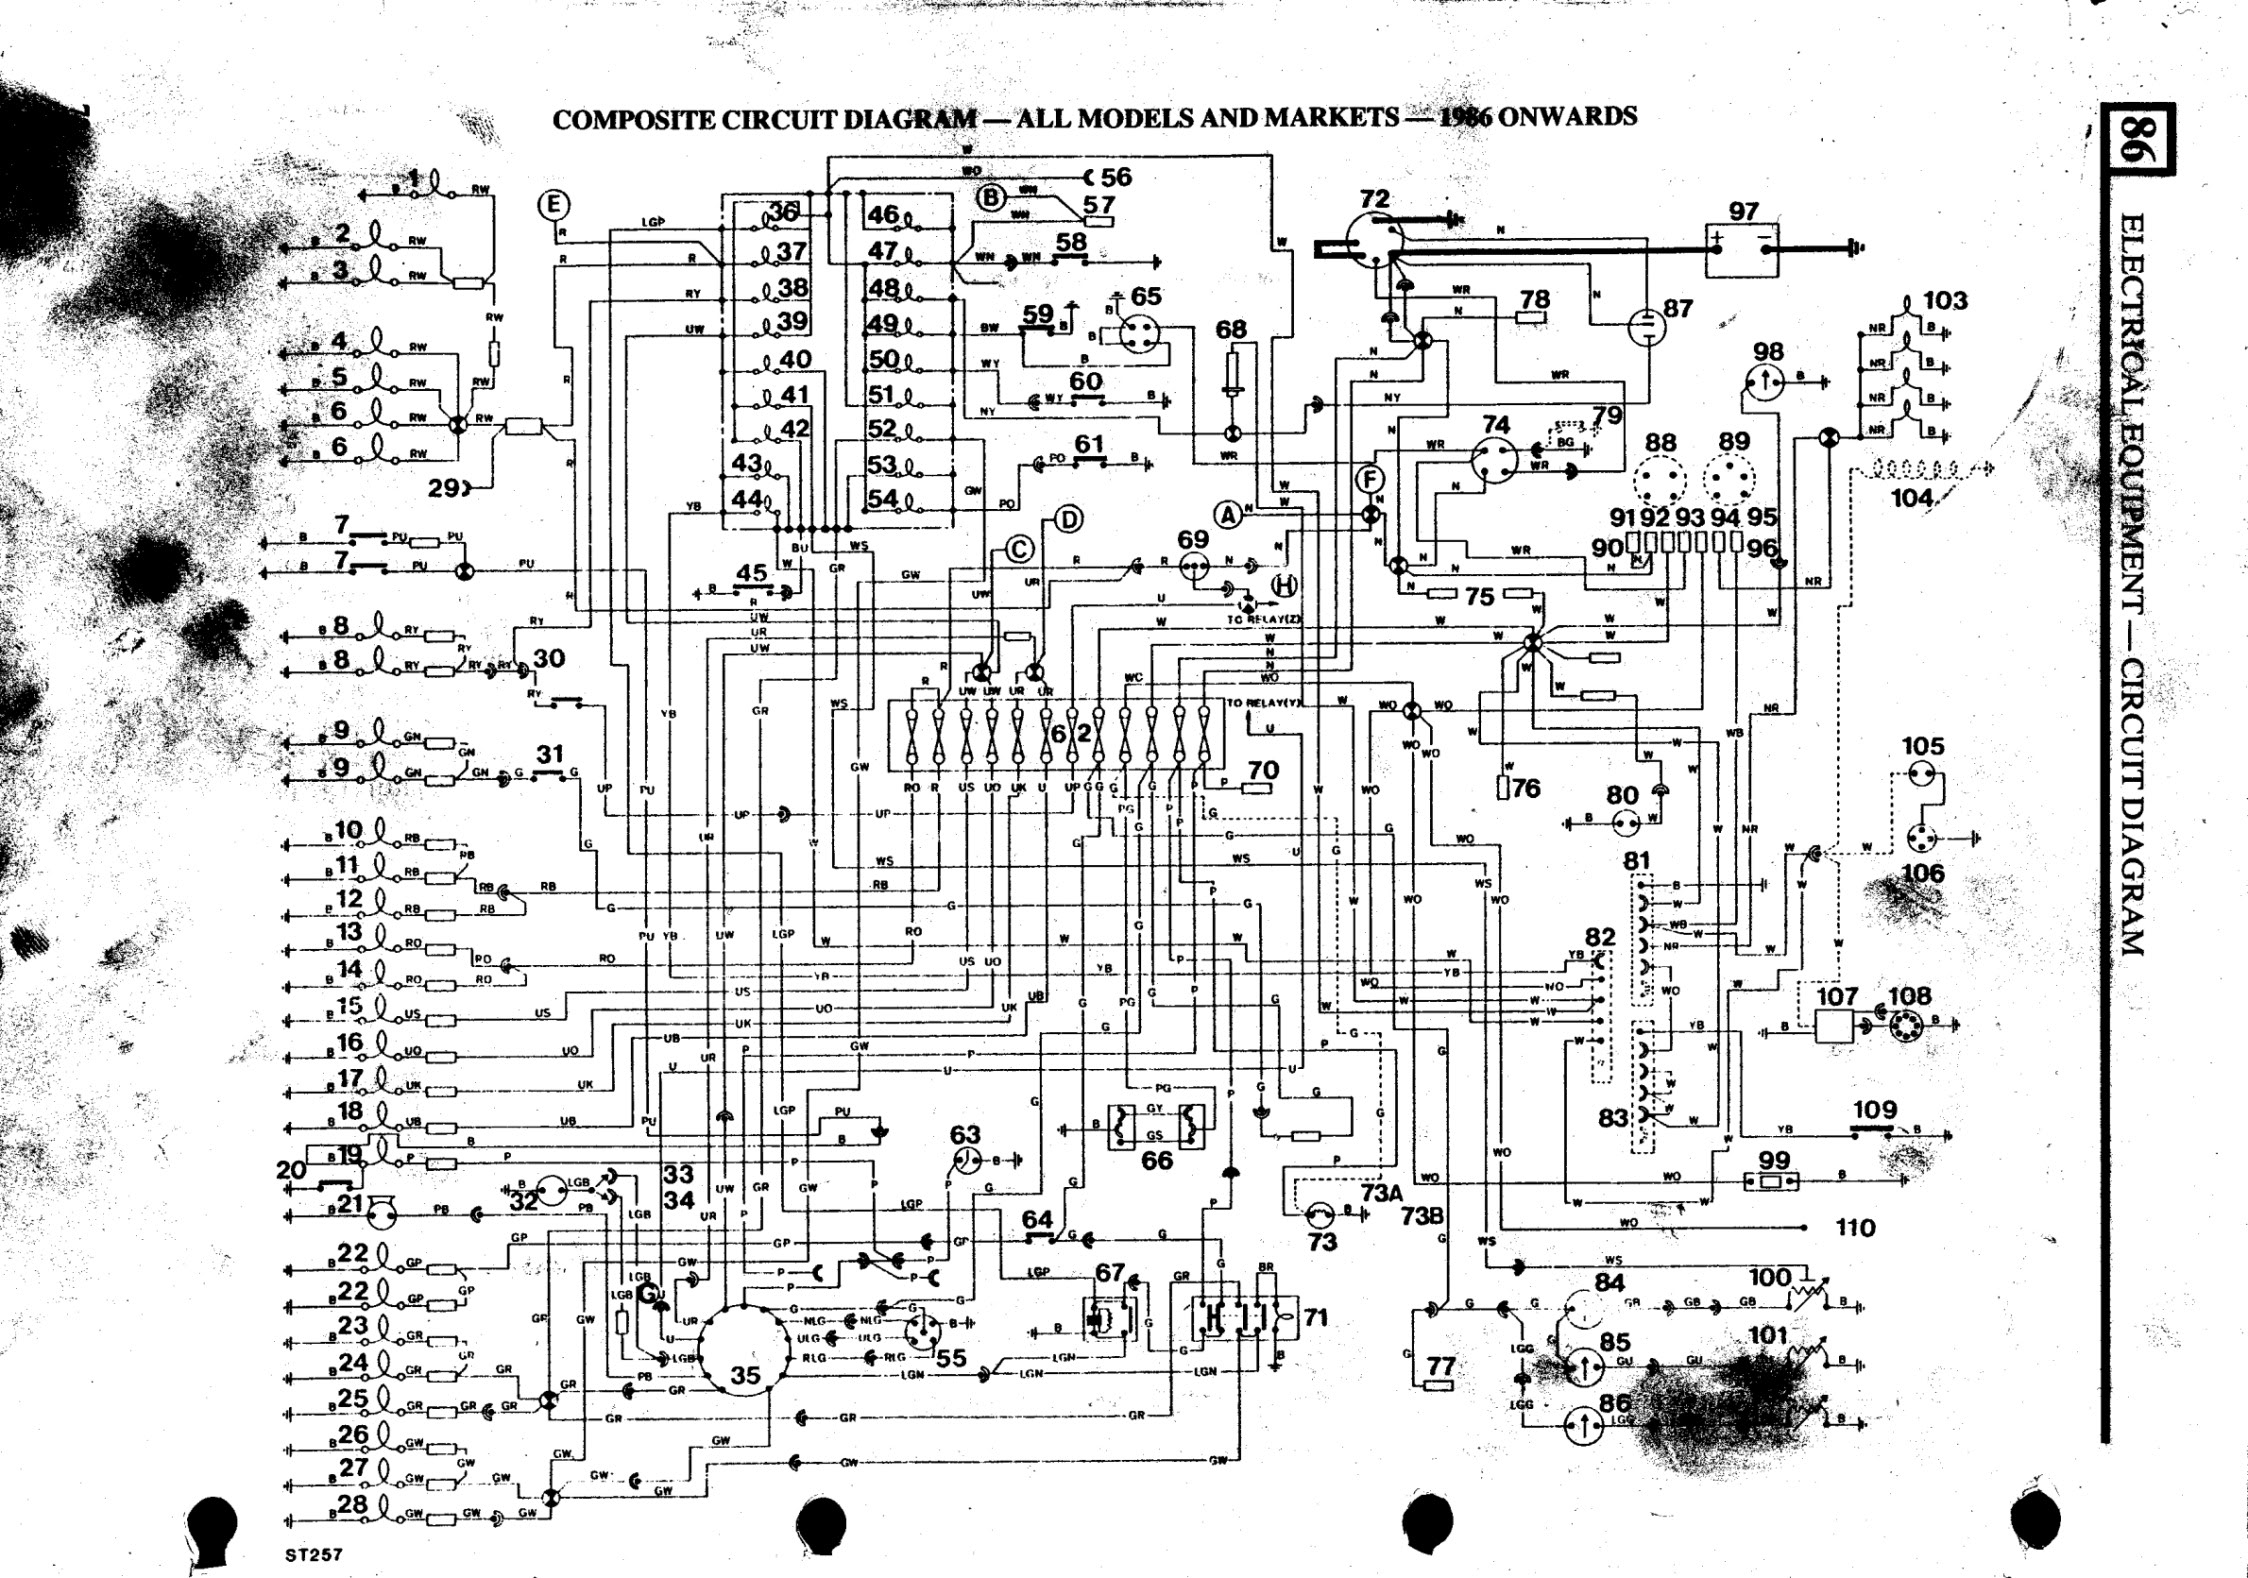 1997 land rover discovery wiring diagram wiring schematic diagram 2002 Land Rover Discovery Fuse Diagram 1997 land rover discovery wiring diagrams best wiring library 2003 land rover discovery fuse diagram 1997 land rover discovery wiring diagram